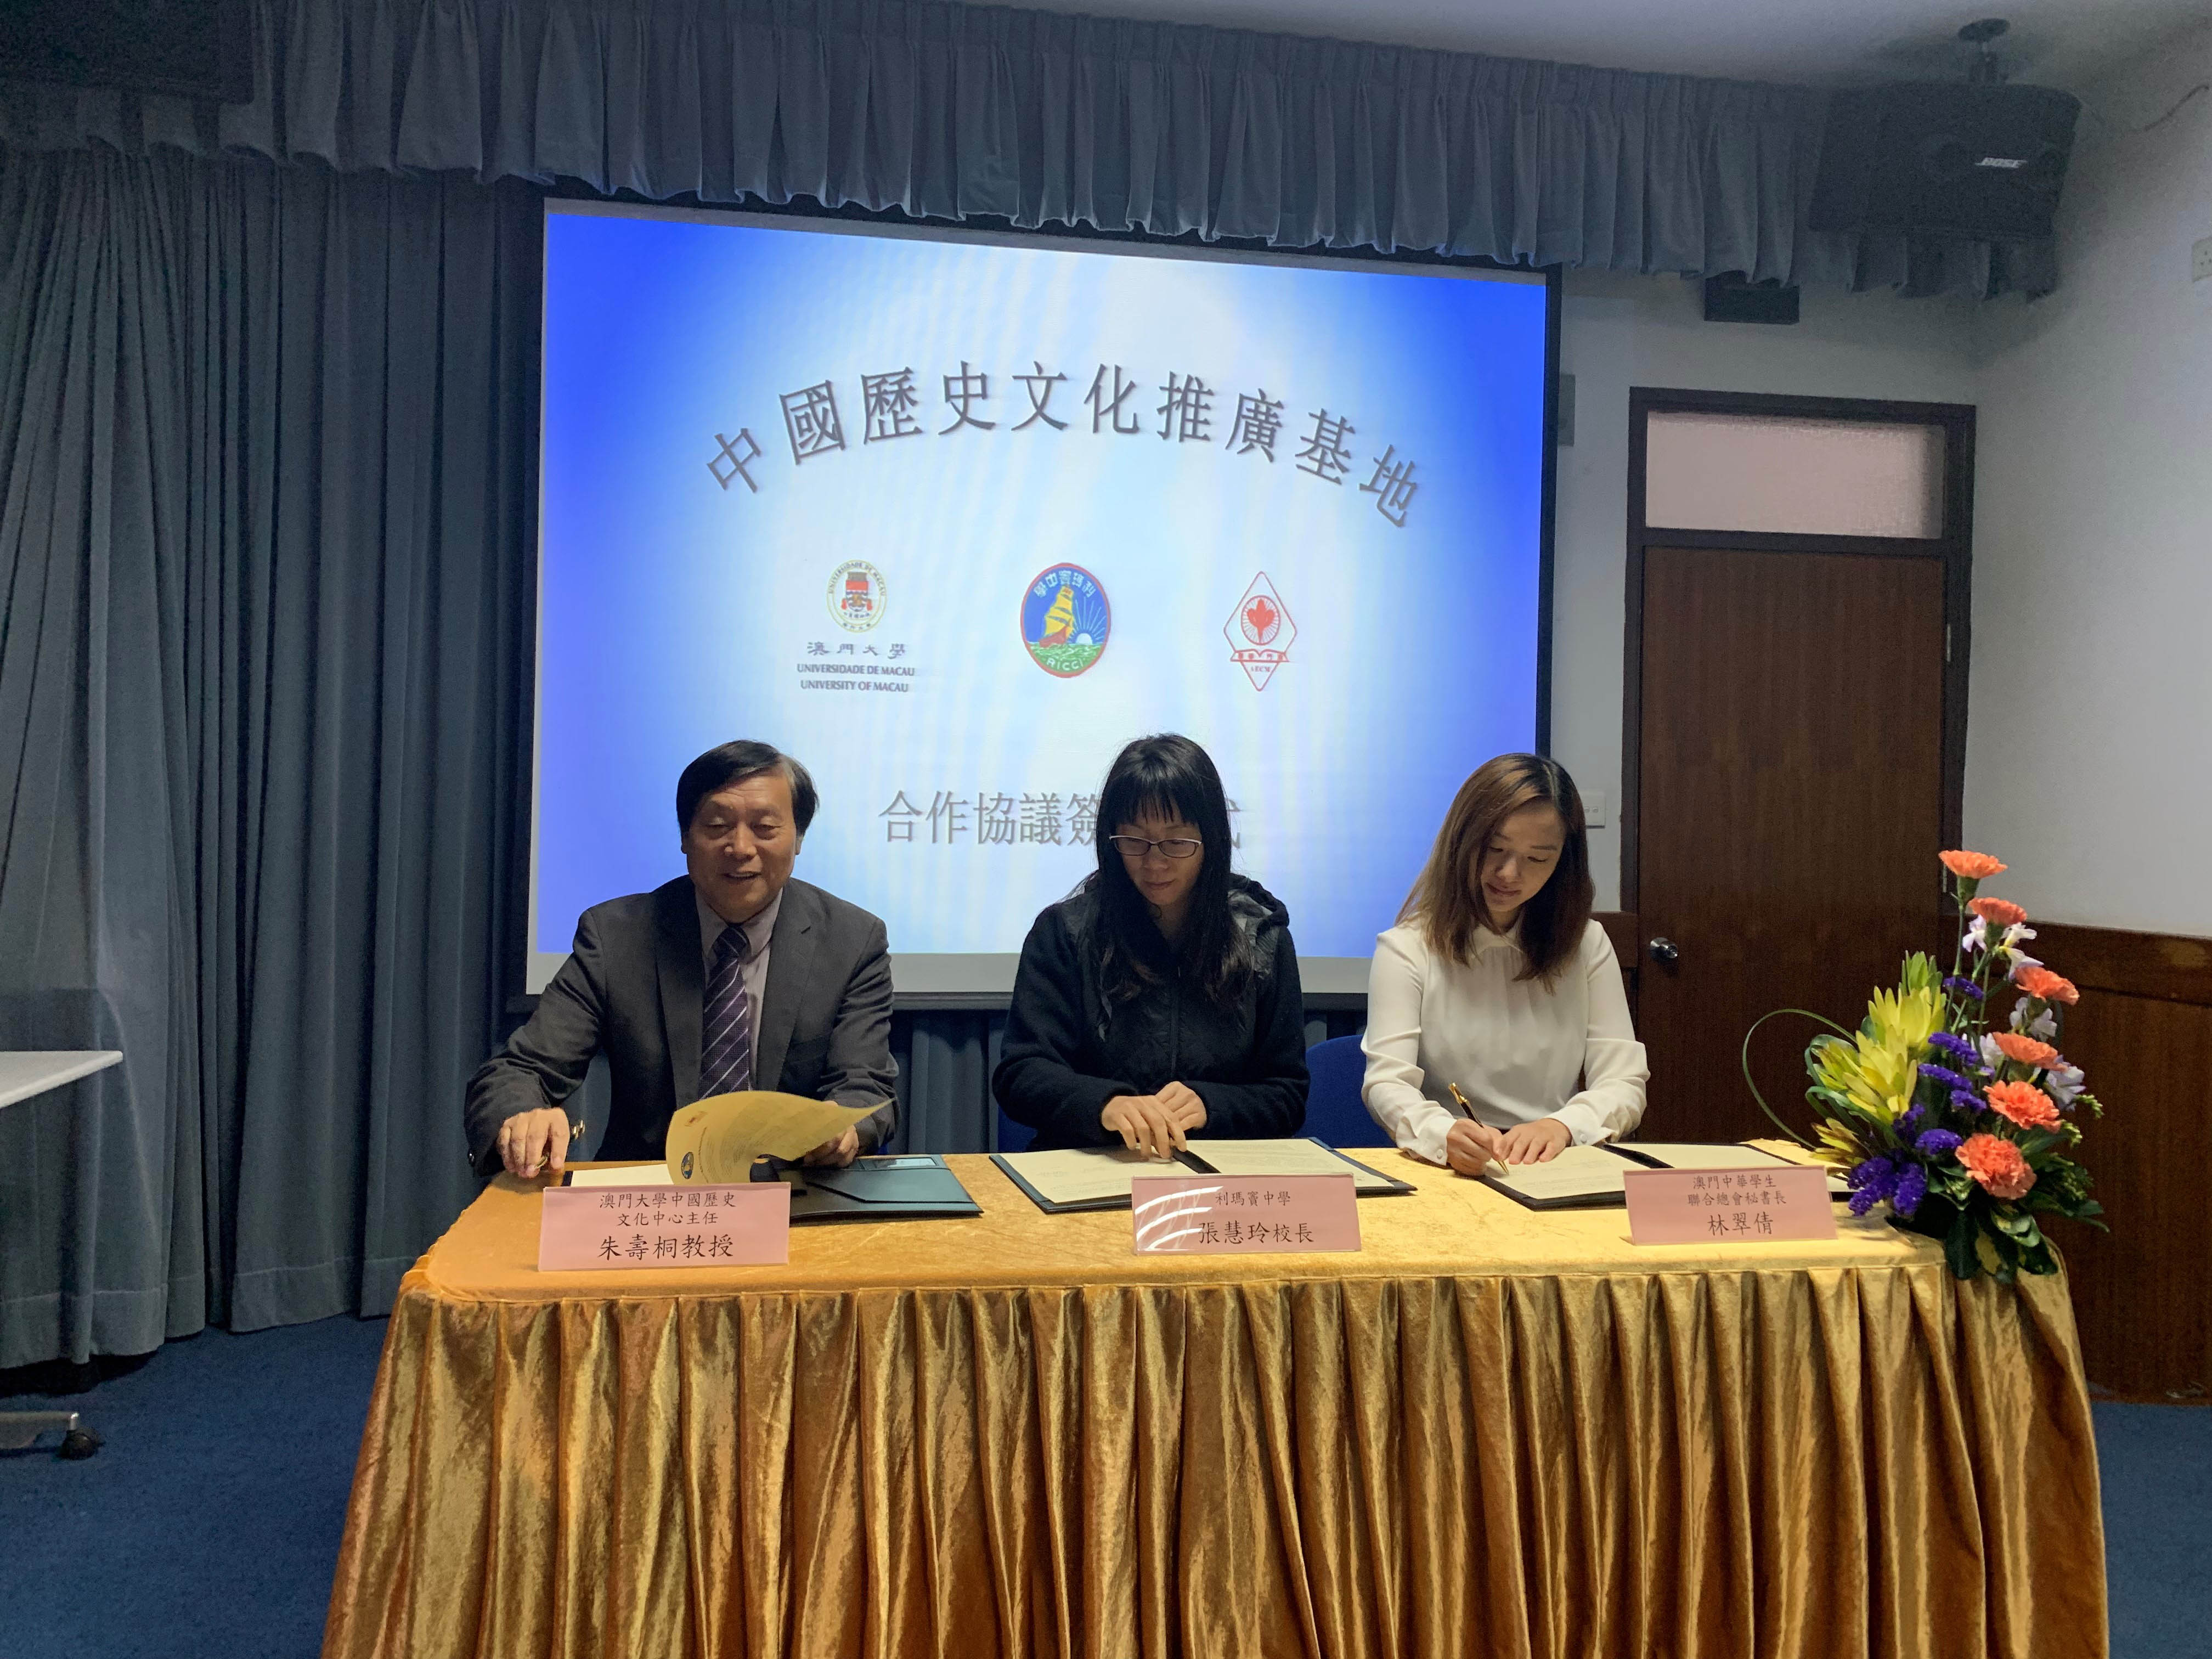 The three parties sign a collaboration agreement on the promotion of Chinese history and culture